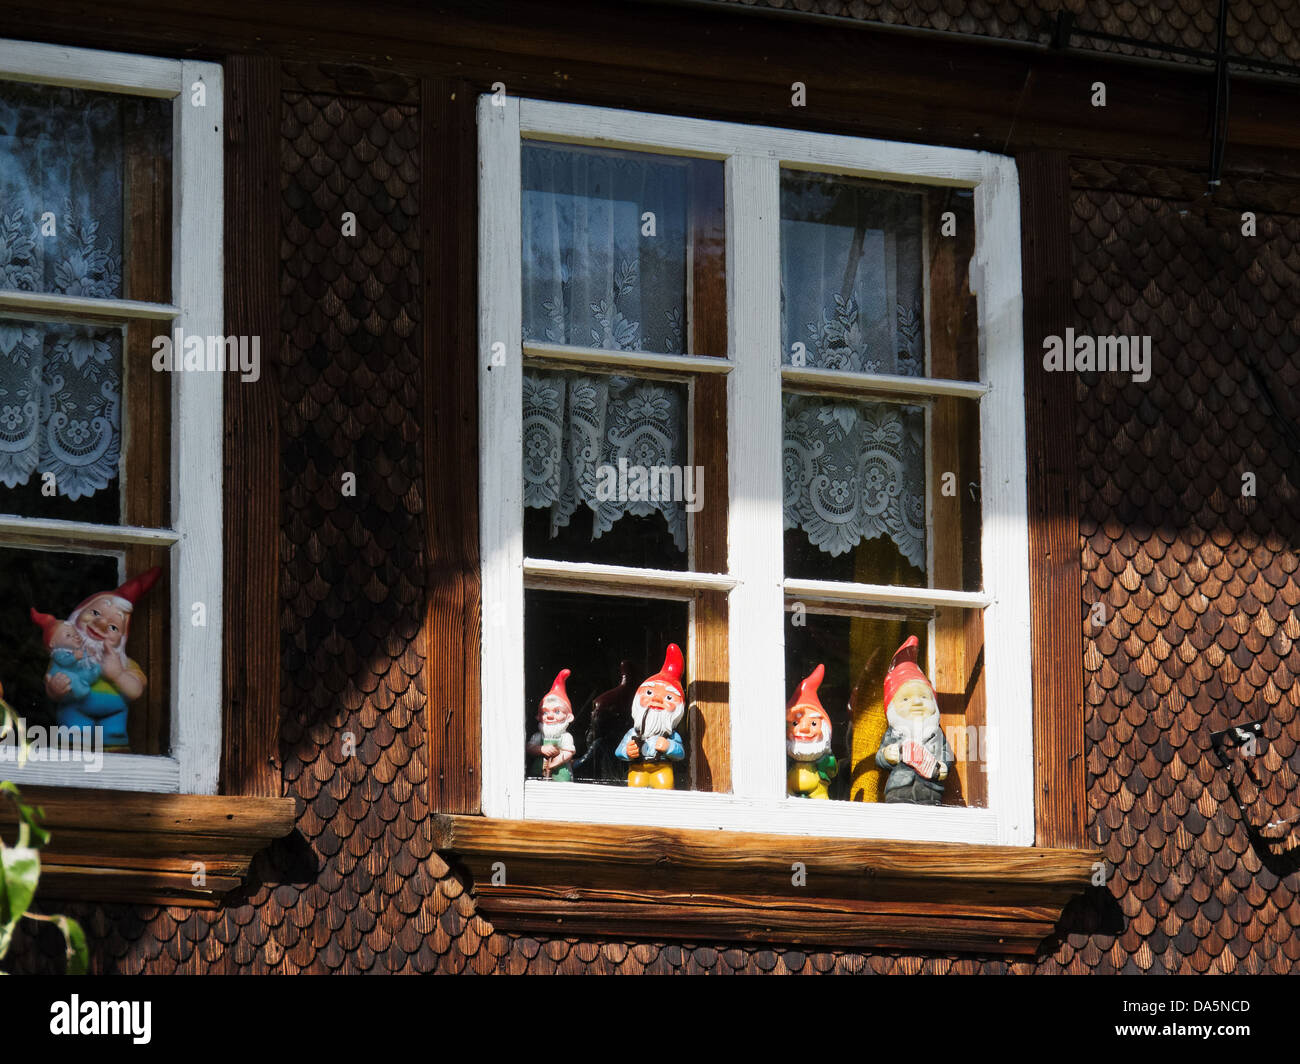 Shingle facade stockfotos shingle facade bilder alamy - Heim haus fenster ...